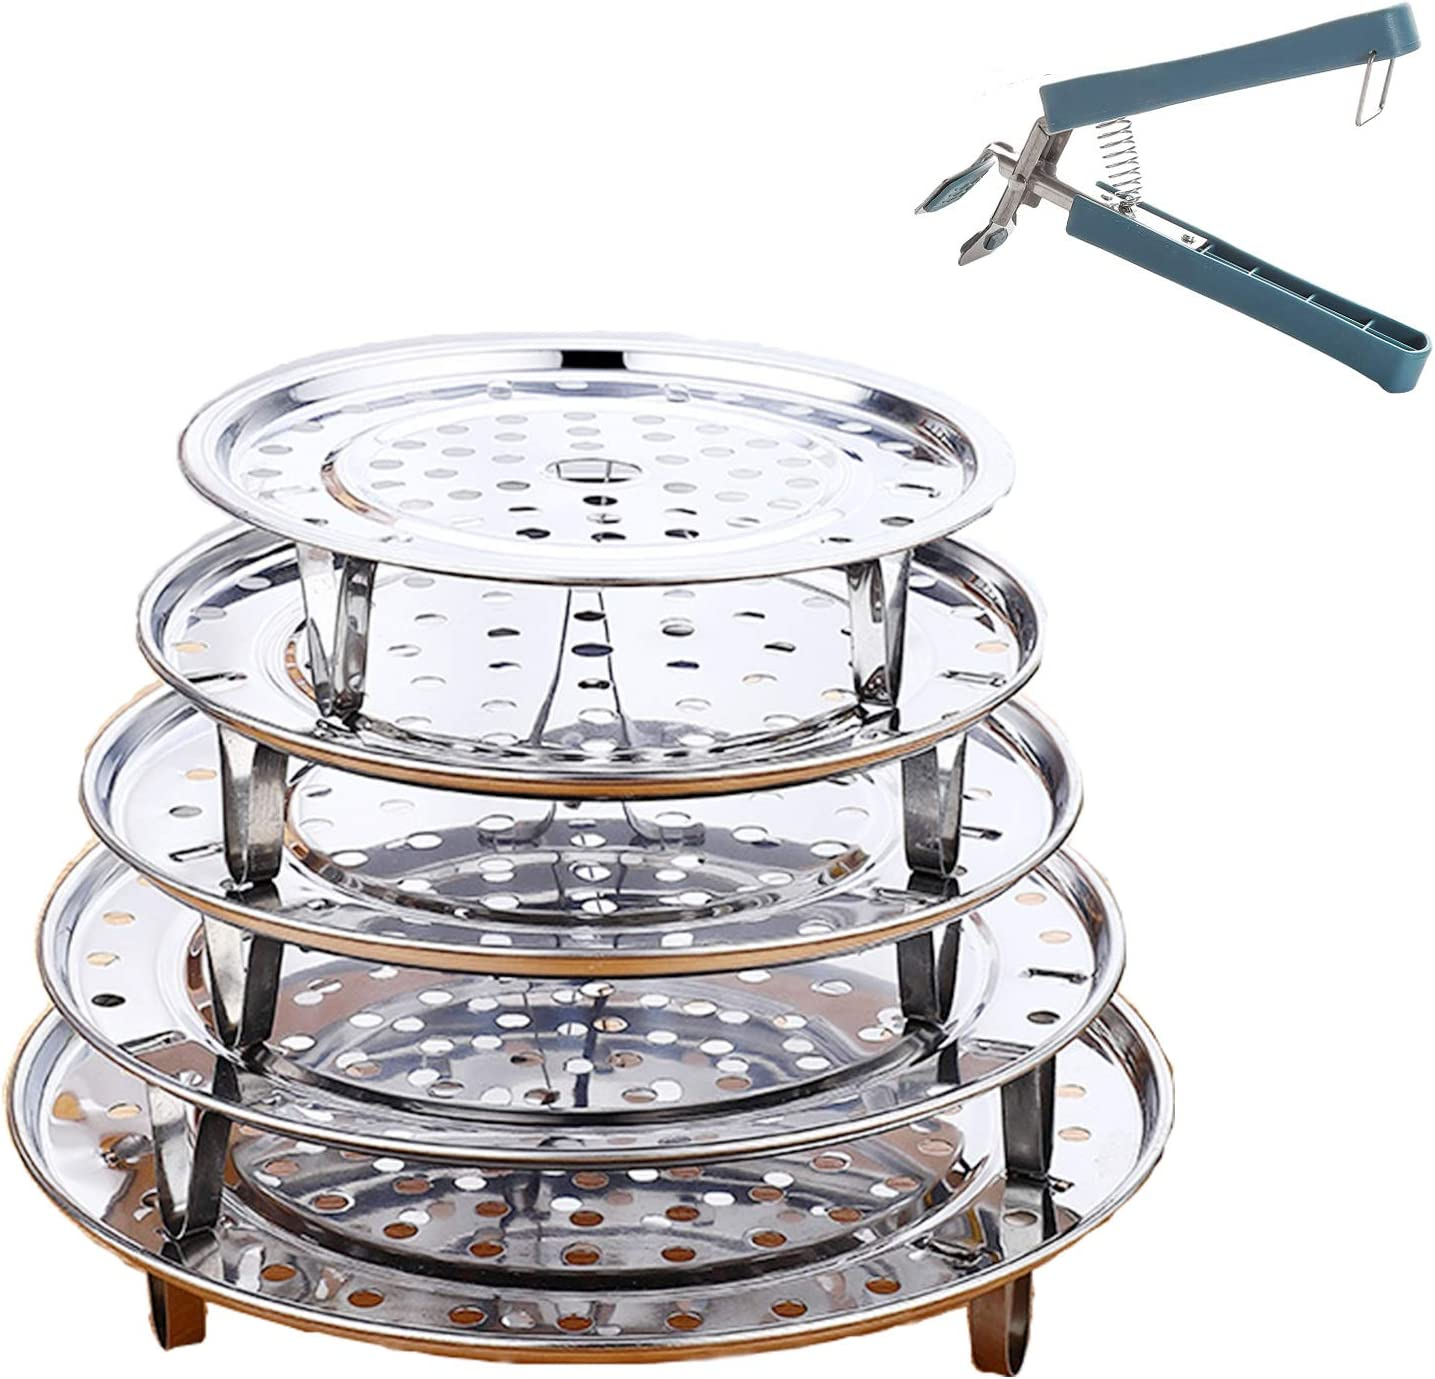 "Brainver 5pcs Stainless Steel Steamer Rack, Multi-Purpose Round Canning Rack Cooling Rack with Detachable Legs for Baking.Cooking, Steaming, Lifting Pressure Cooker.(7"" 8"" 8.8"" 9.5"" 10.23'' Inch)"